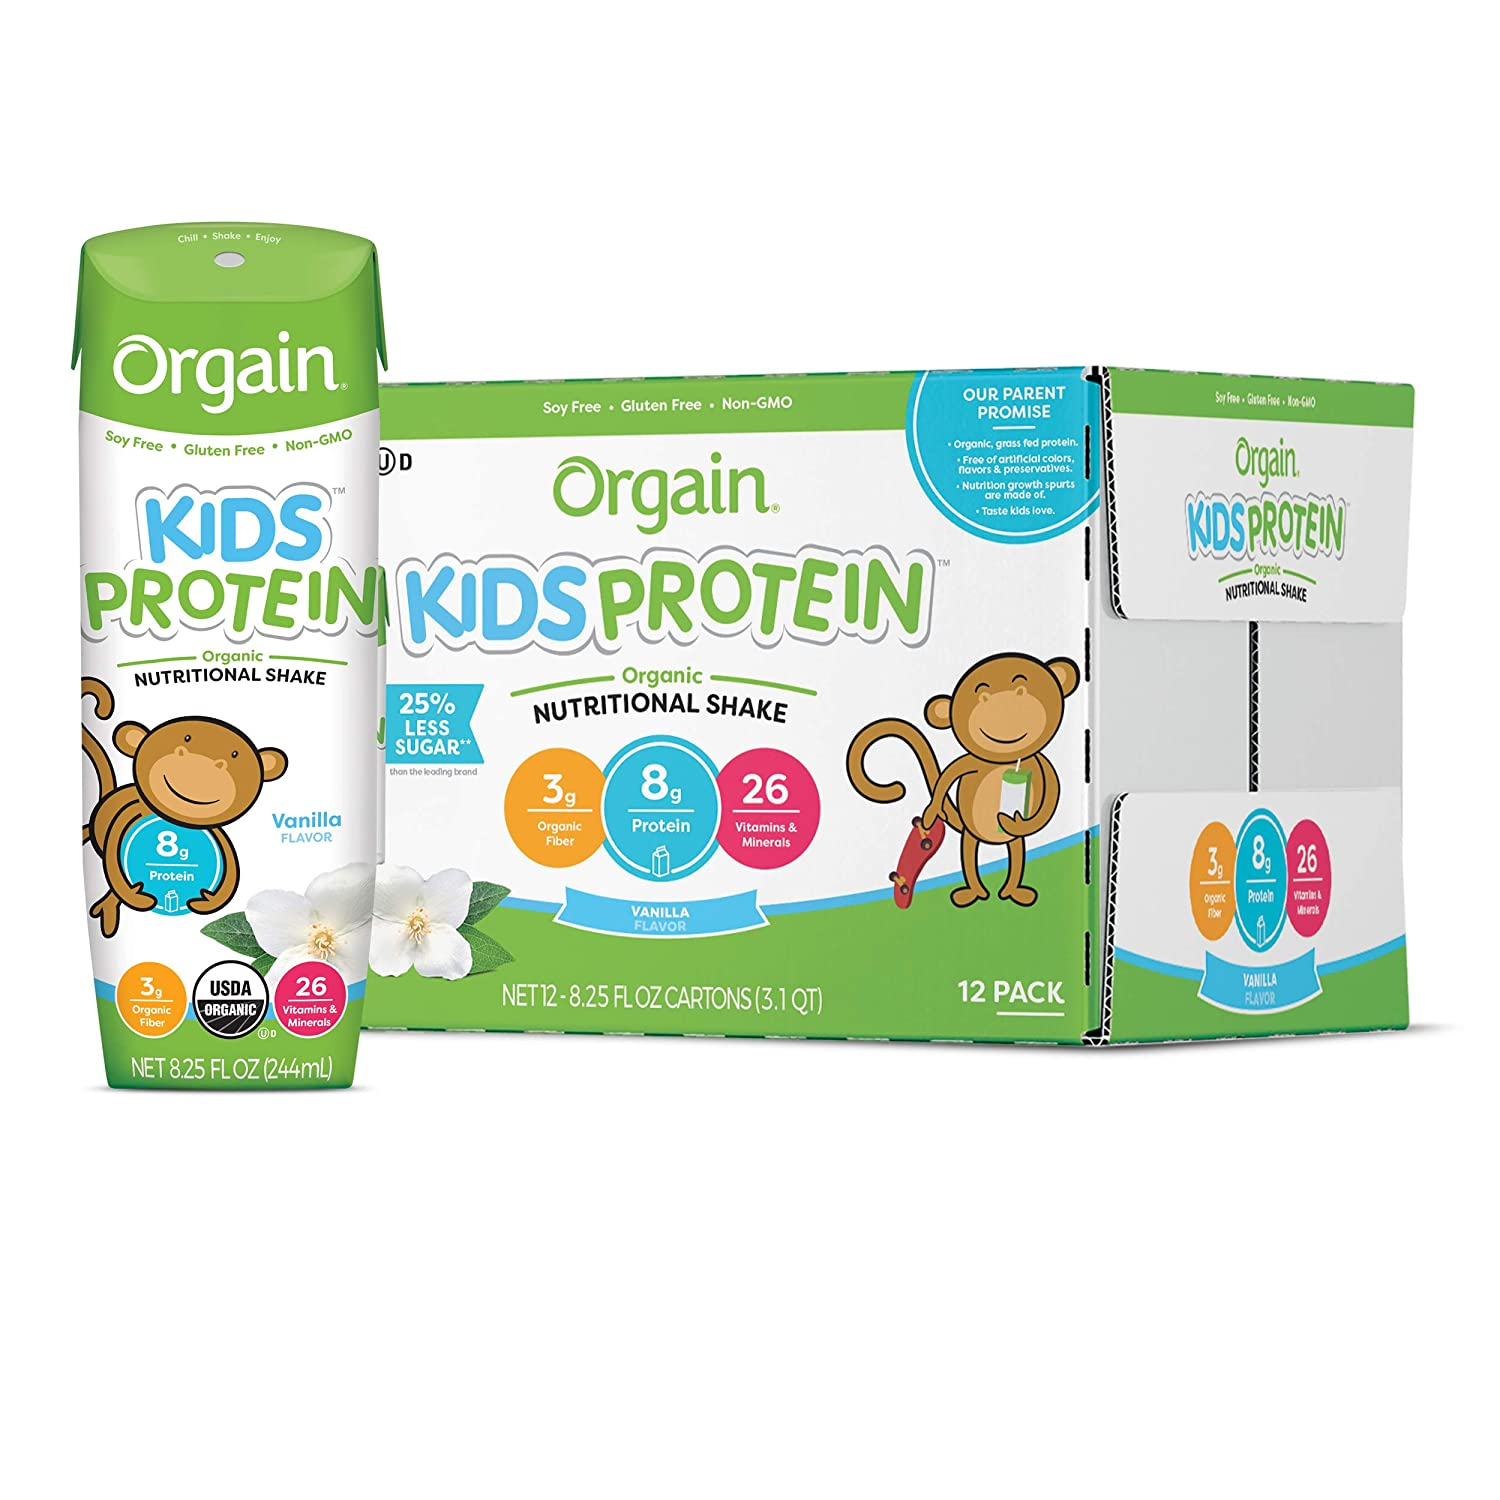 Orgain Organic Kids Protein Nutritional Shake, Vanilla - Great for Breakfast & Snacks, 26 Vitamins & Minerals, 10 Fruits & Vegetables, Gluten Free, Soy Free, 8.25 Oz, 12 Count (Packaging May Vary) : Meal Replacement Drinks : Grocery & Gourmet Food